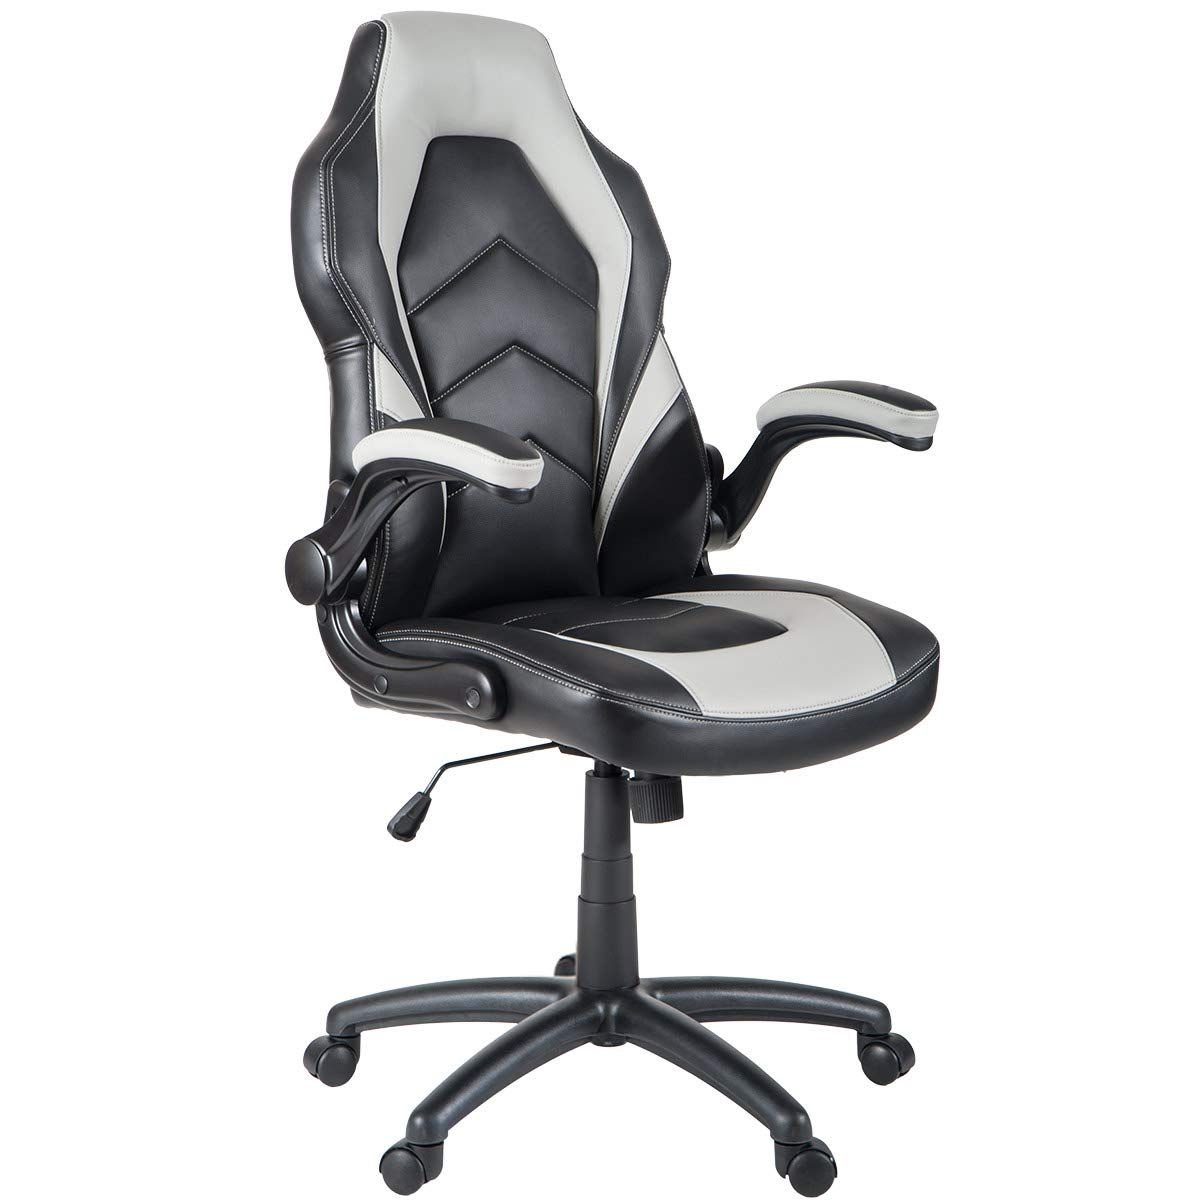 ModernLuxe Ergonomic Swivel Office chair High Back Racing Style PU Leather Gaming Chair with Flipped Armrests (Black and Grey)